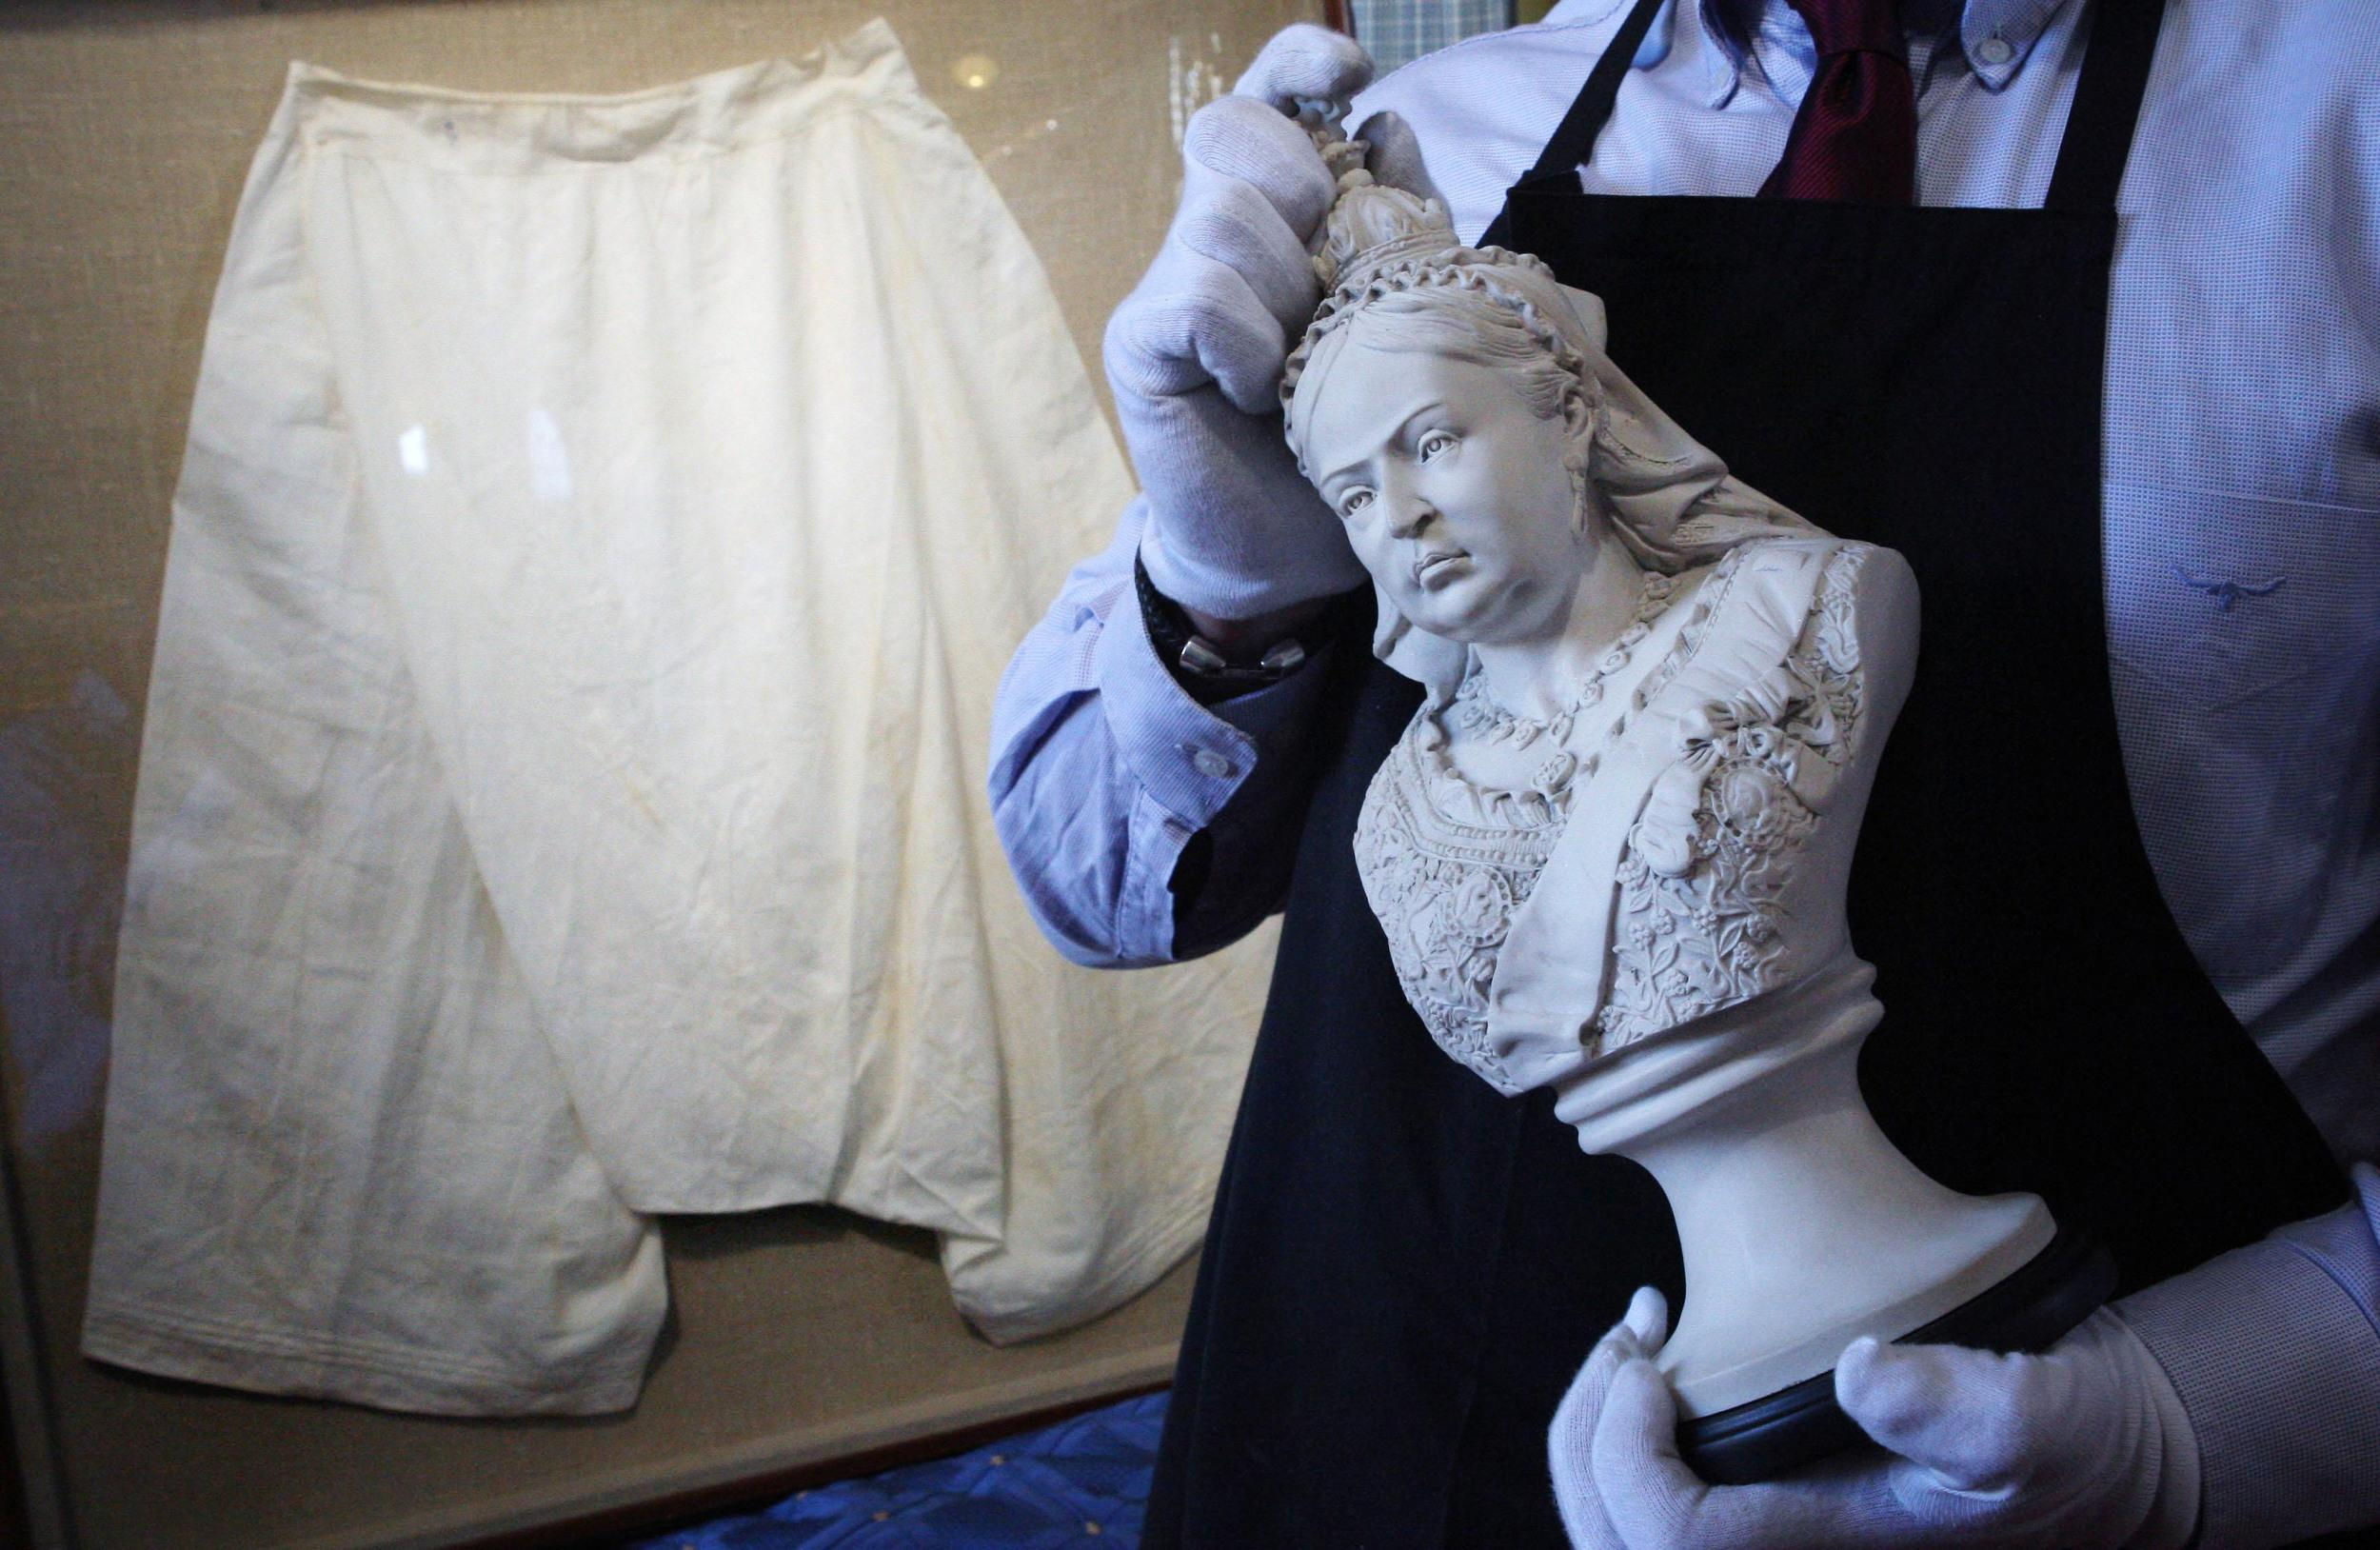 """<p>Queen Victoria's bloomers sold at auction for £6,200, along with a pair of her silk stockings.</p>  <p>They have a 52-inch waist, and belonged to the monarch in the 1890s - """"towards the end of her life when she had eaten a lot more than most people could afford to,"""" said auctioneer Michael Hogben. In today's sizing, they'd be a size 26.</p>"""